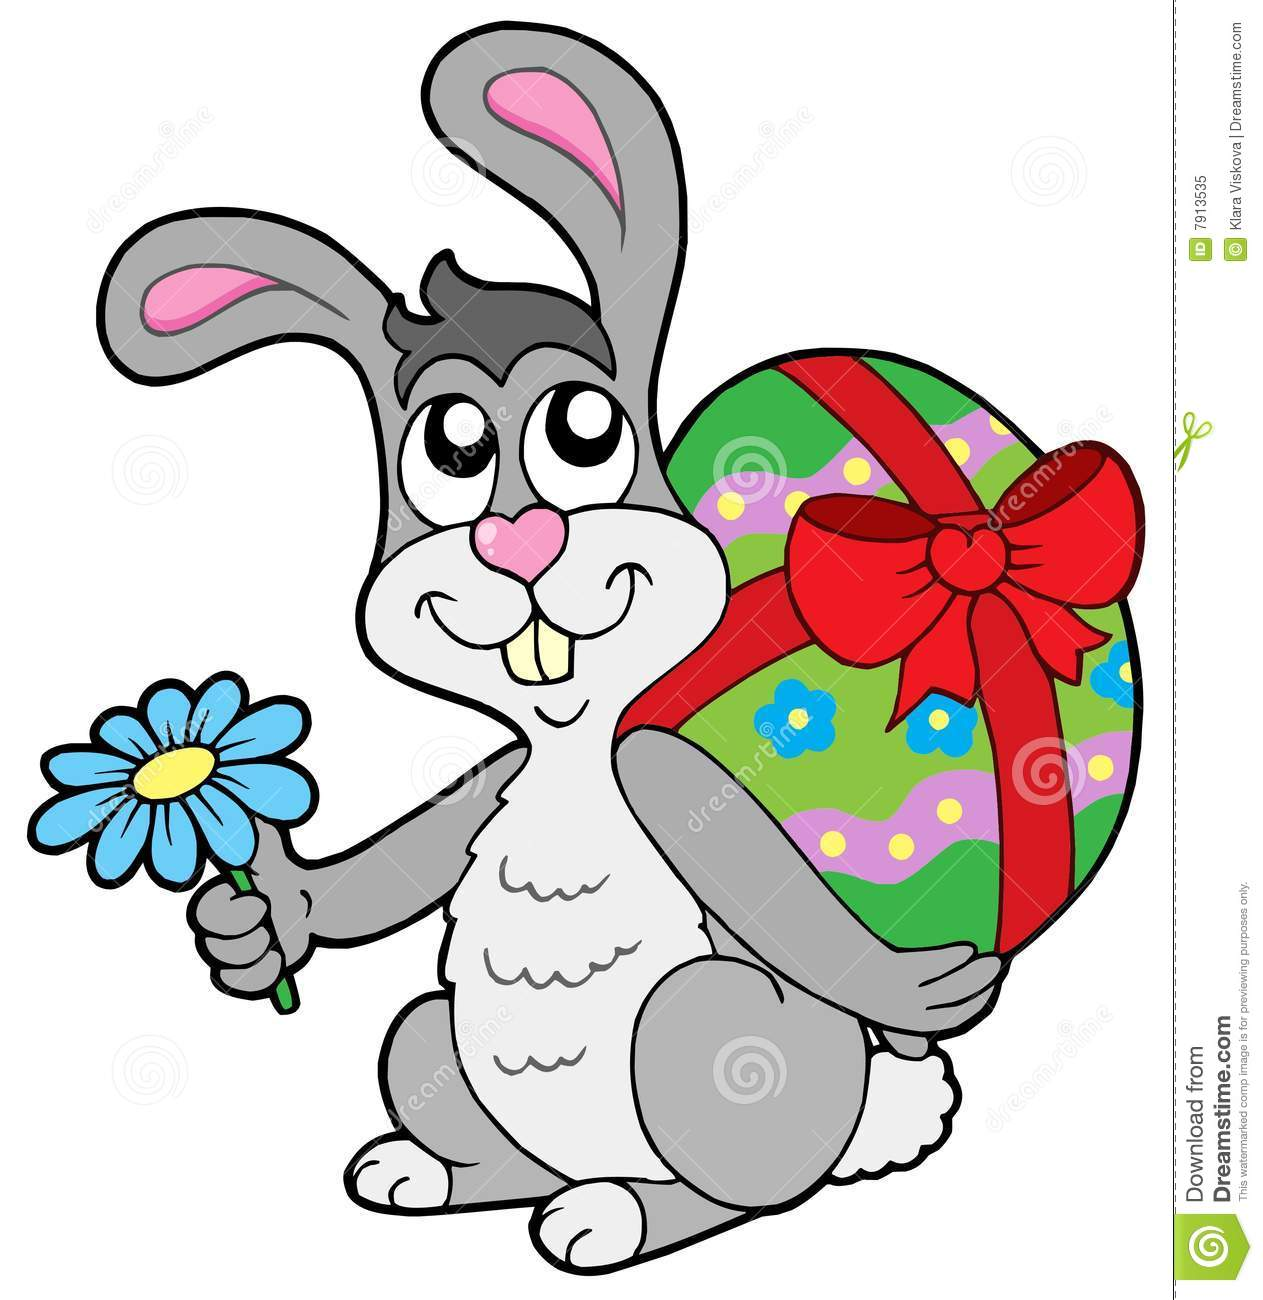 small easter bunny with egg royalty free stock photo image 7913535